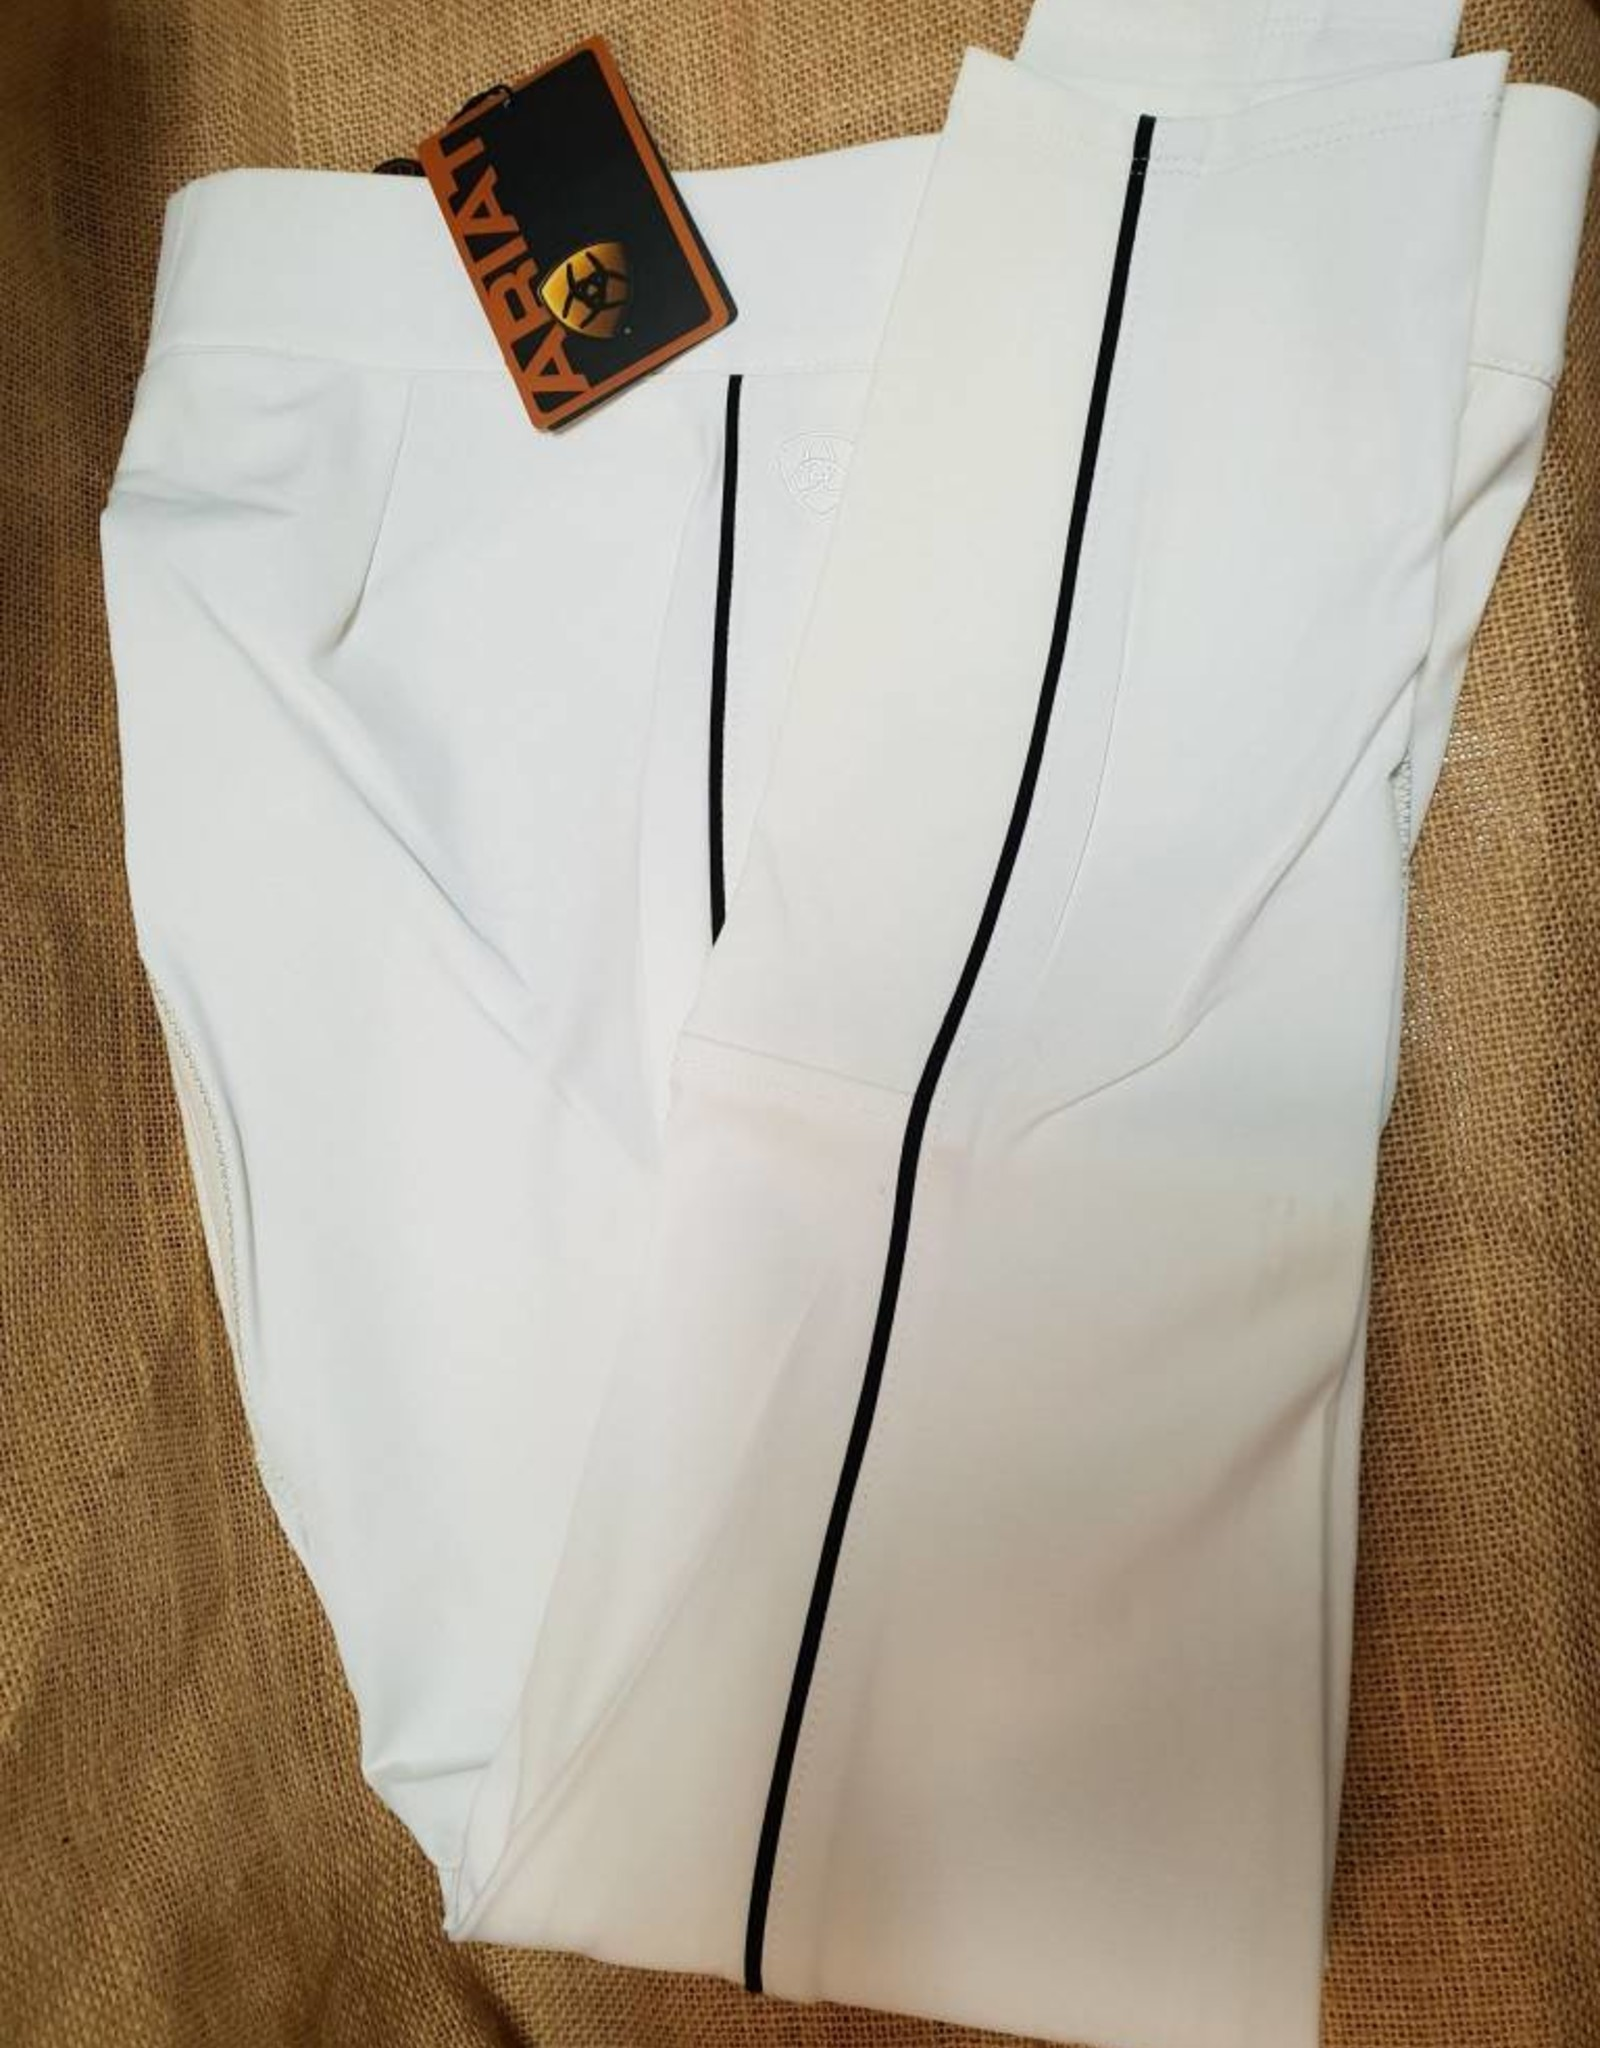 Ariat Ariat All Circuit Full Seat Breeches - White with Navy Piping - Size 30R